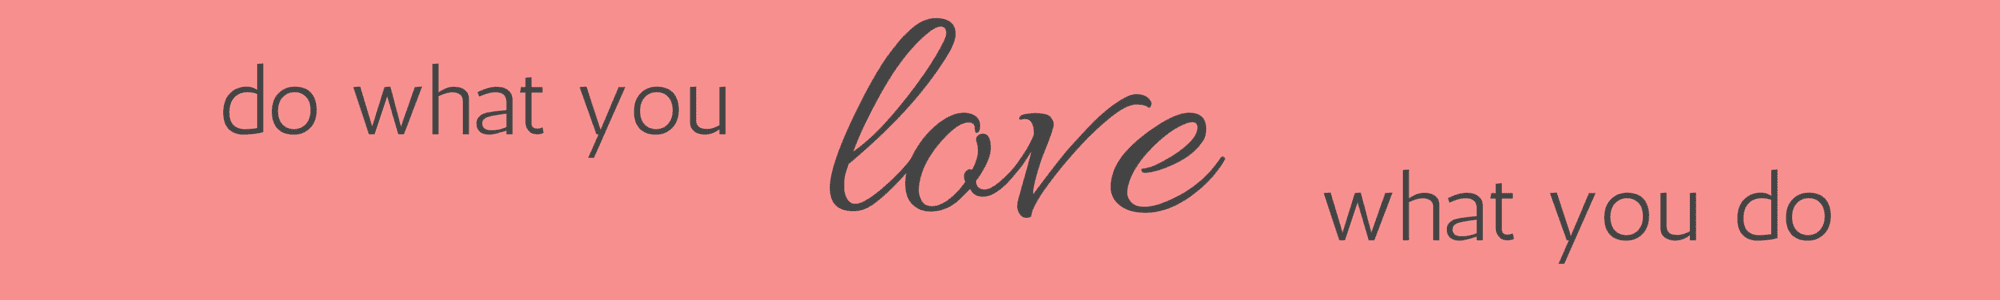 Do what you love header